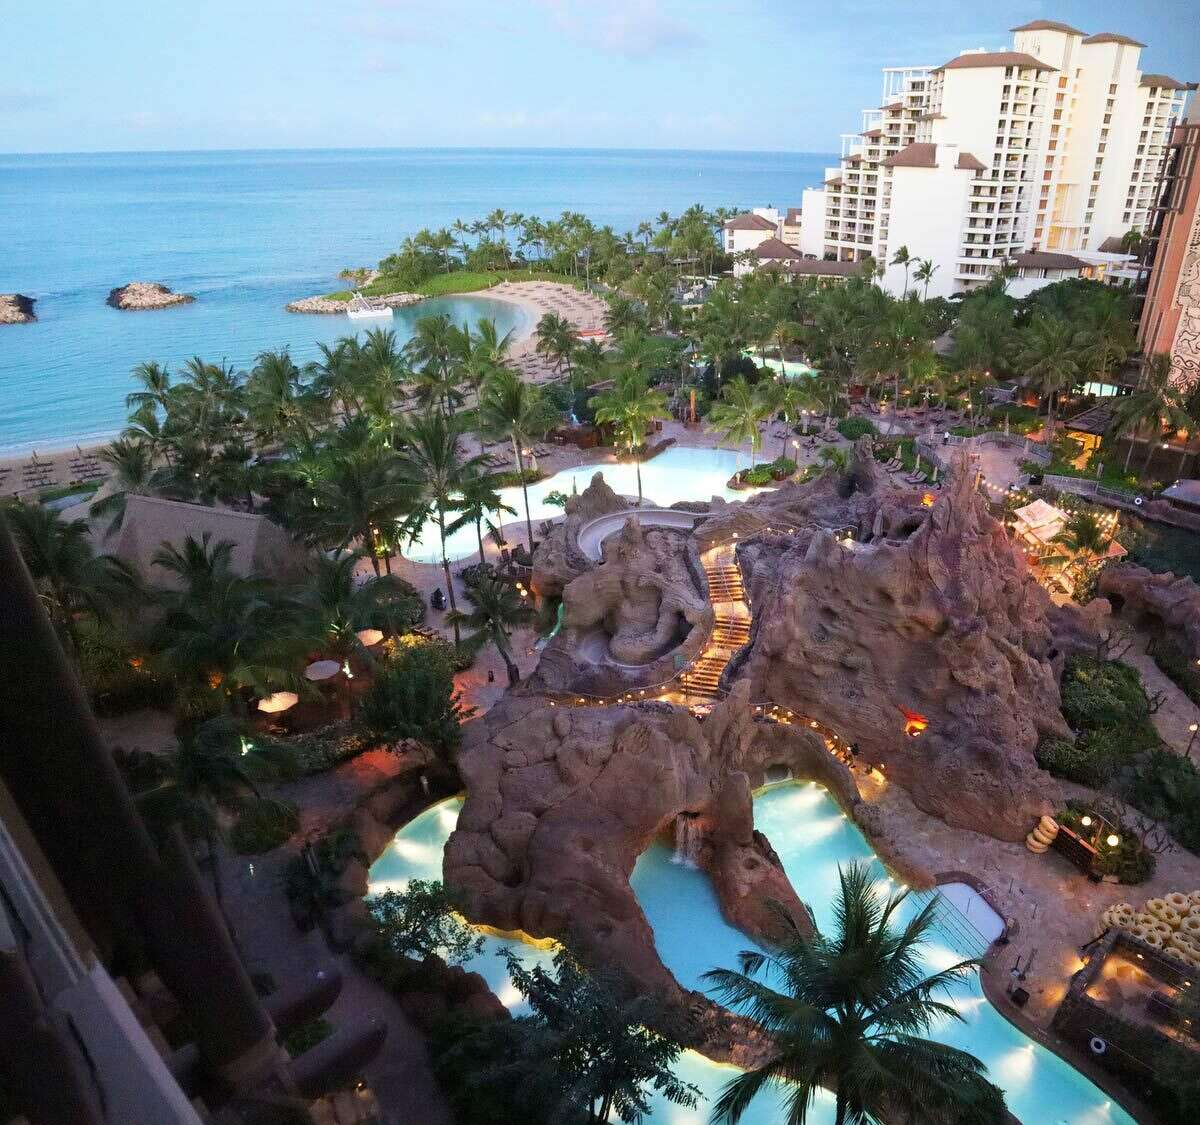 The vista from an ocean view room at Aulani.